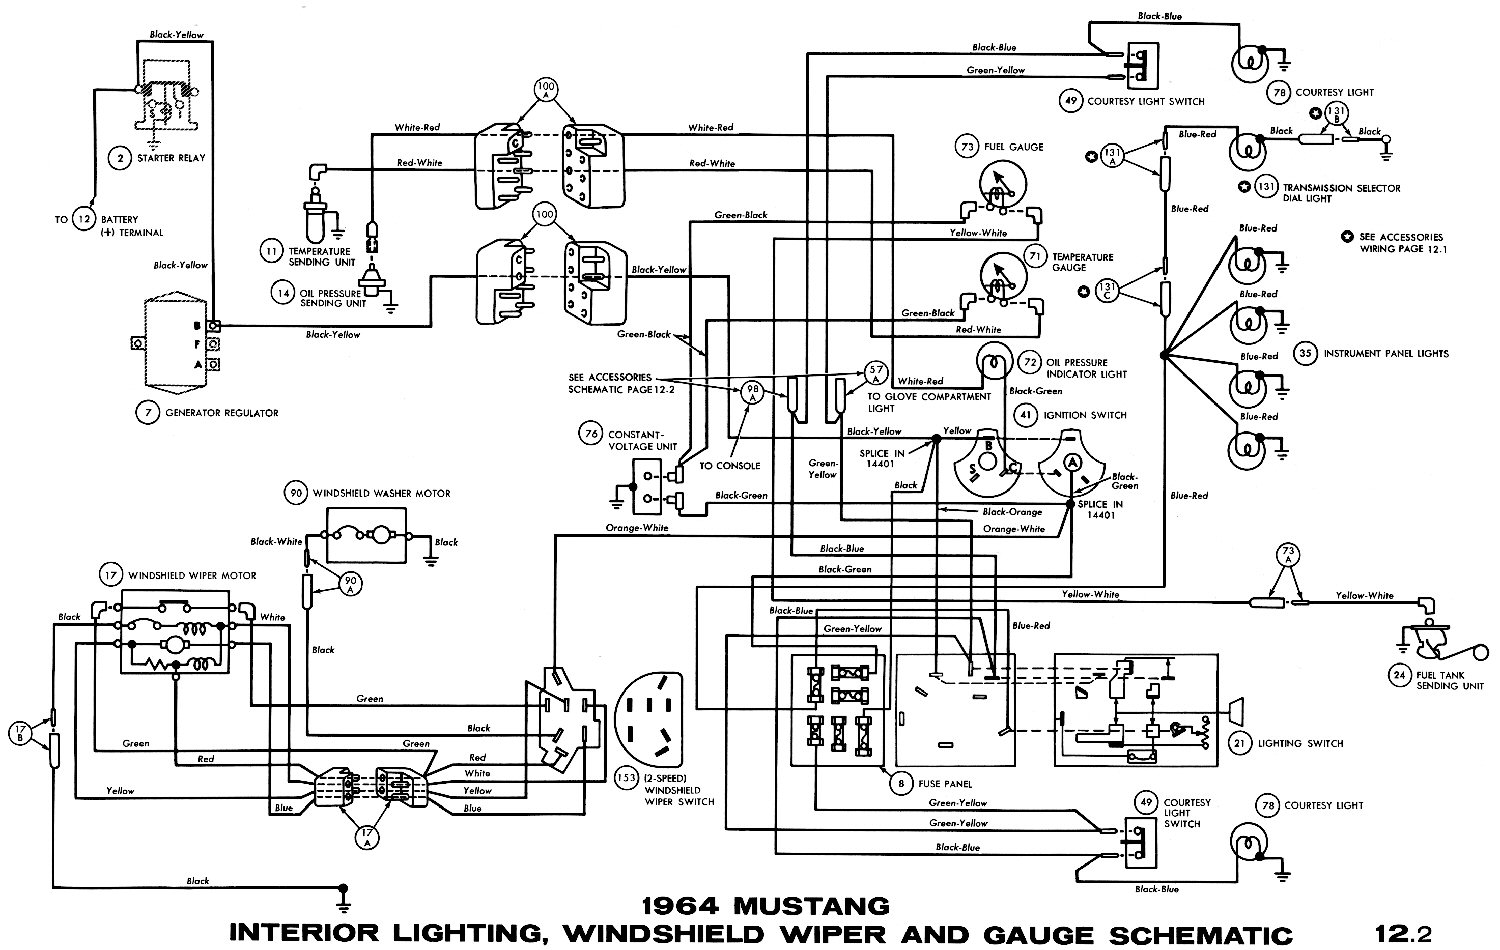 1964k 66 mustang wiring diagram online 65 ford mustang wiring diagram 1969 mustang wiring diagram online at gsmx.co